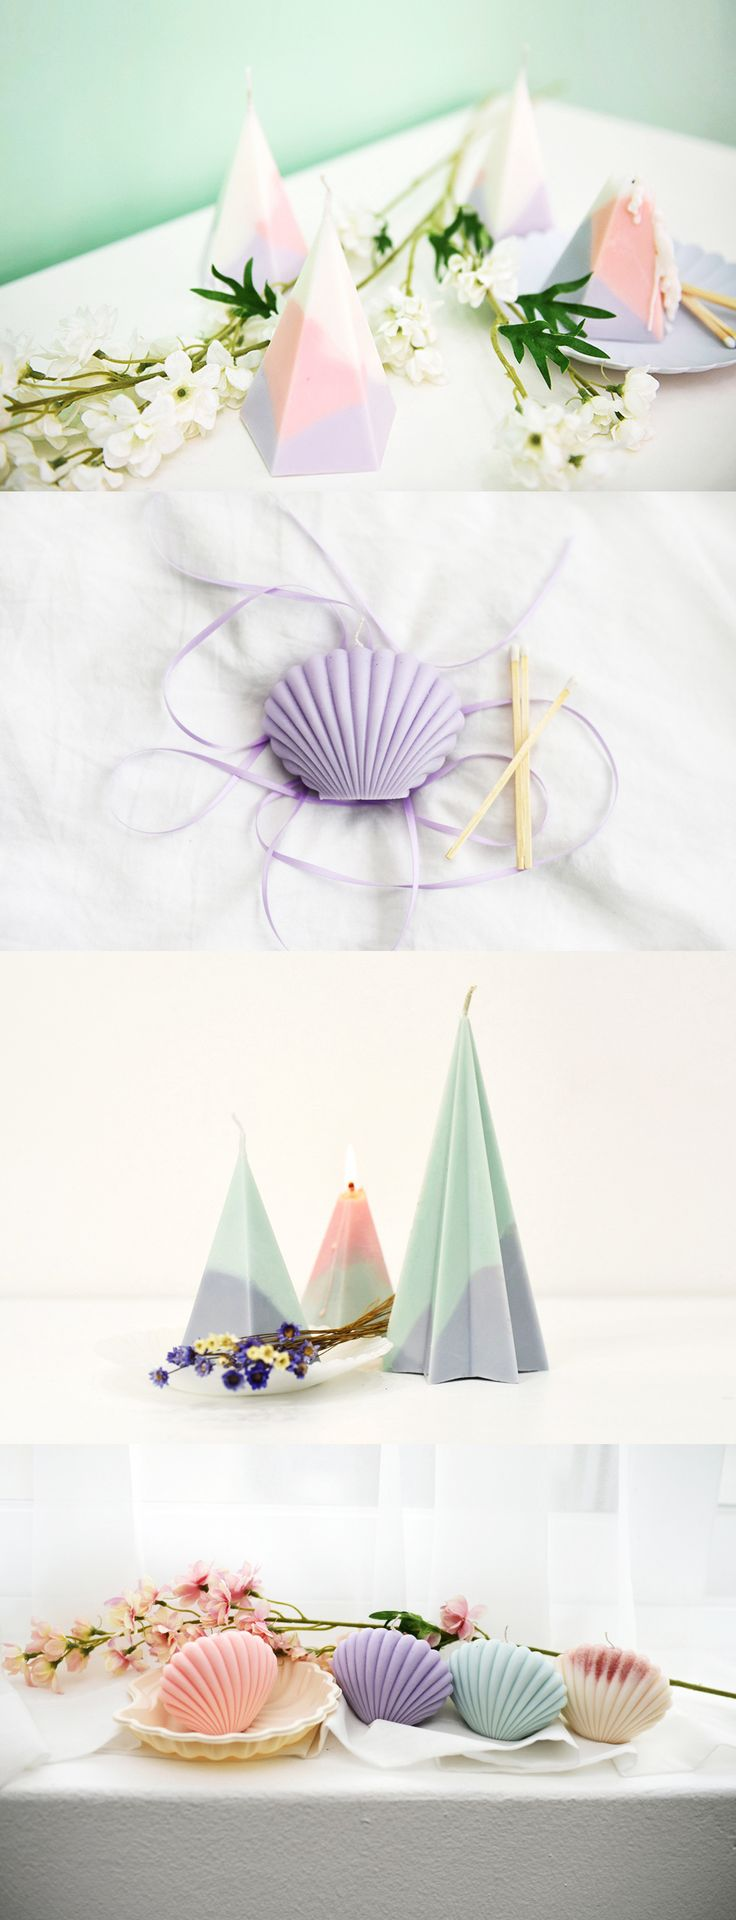 These shell cones and candles are cute